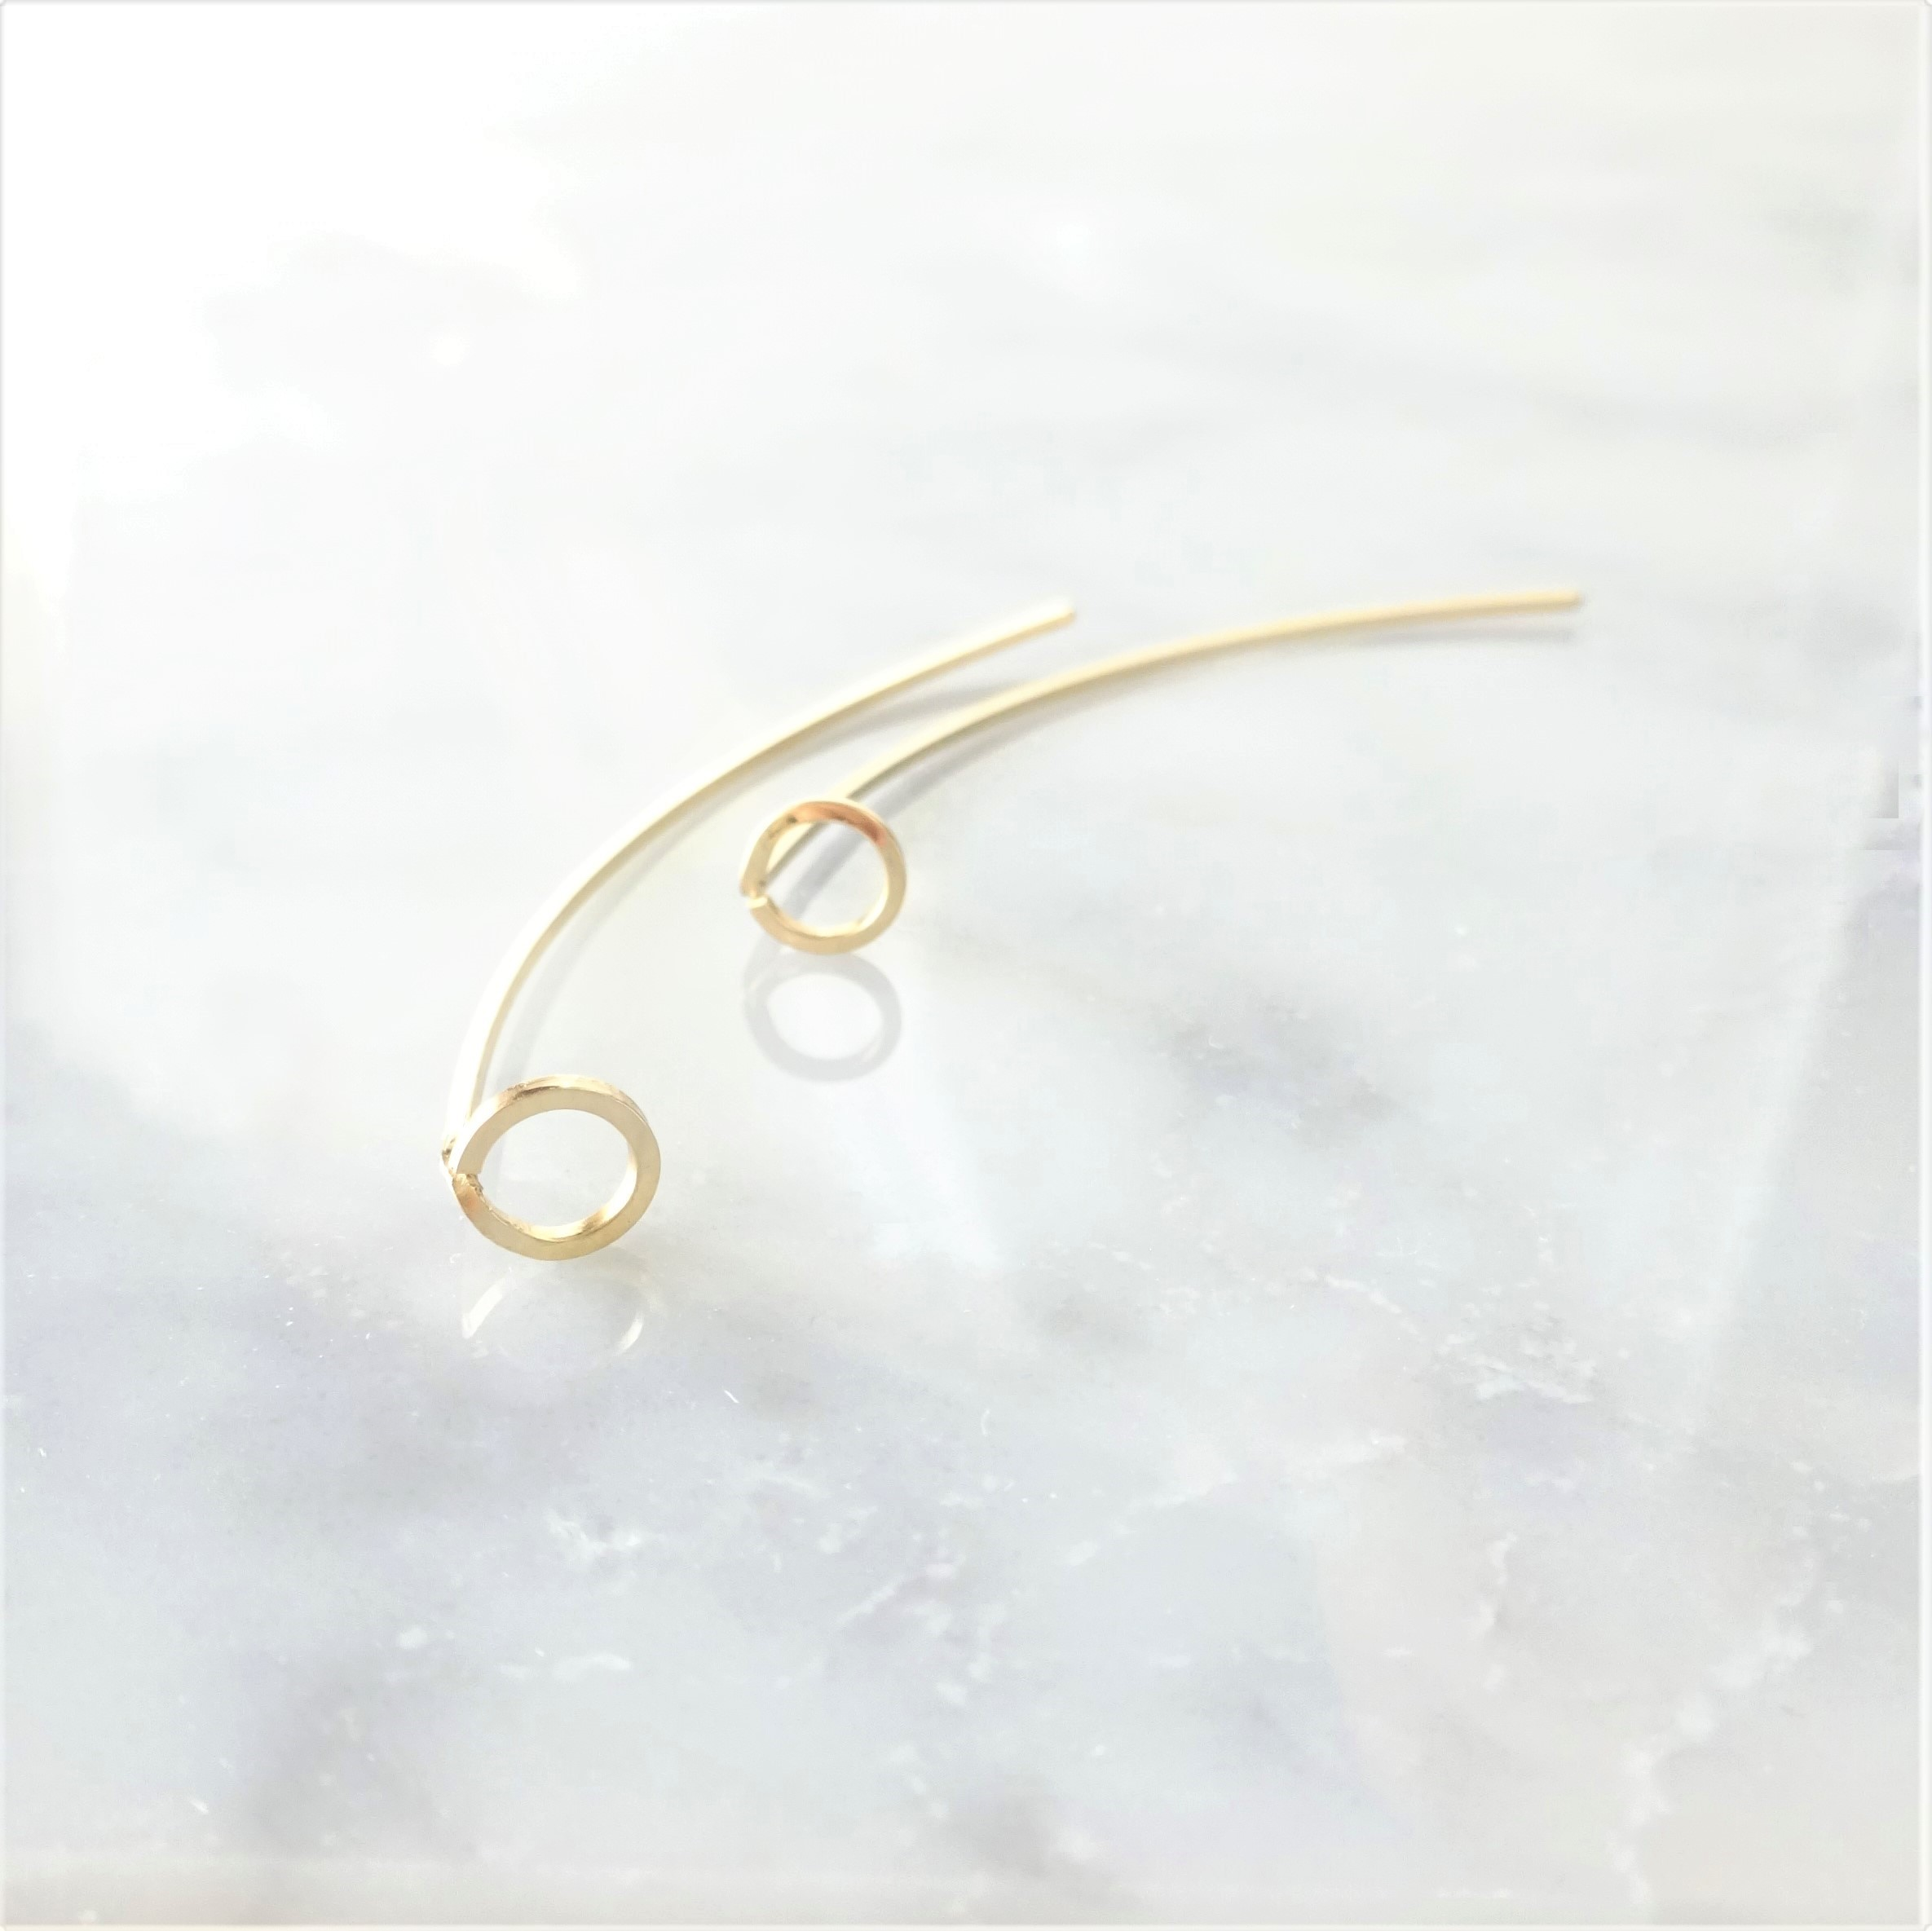 14kgf*CIRCLE arrow pierced earring